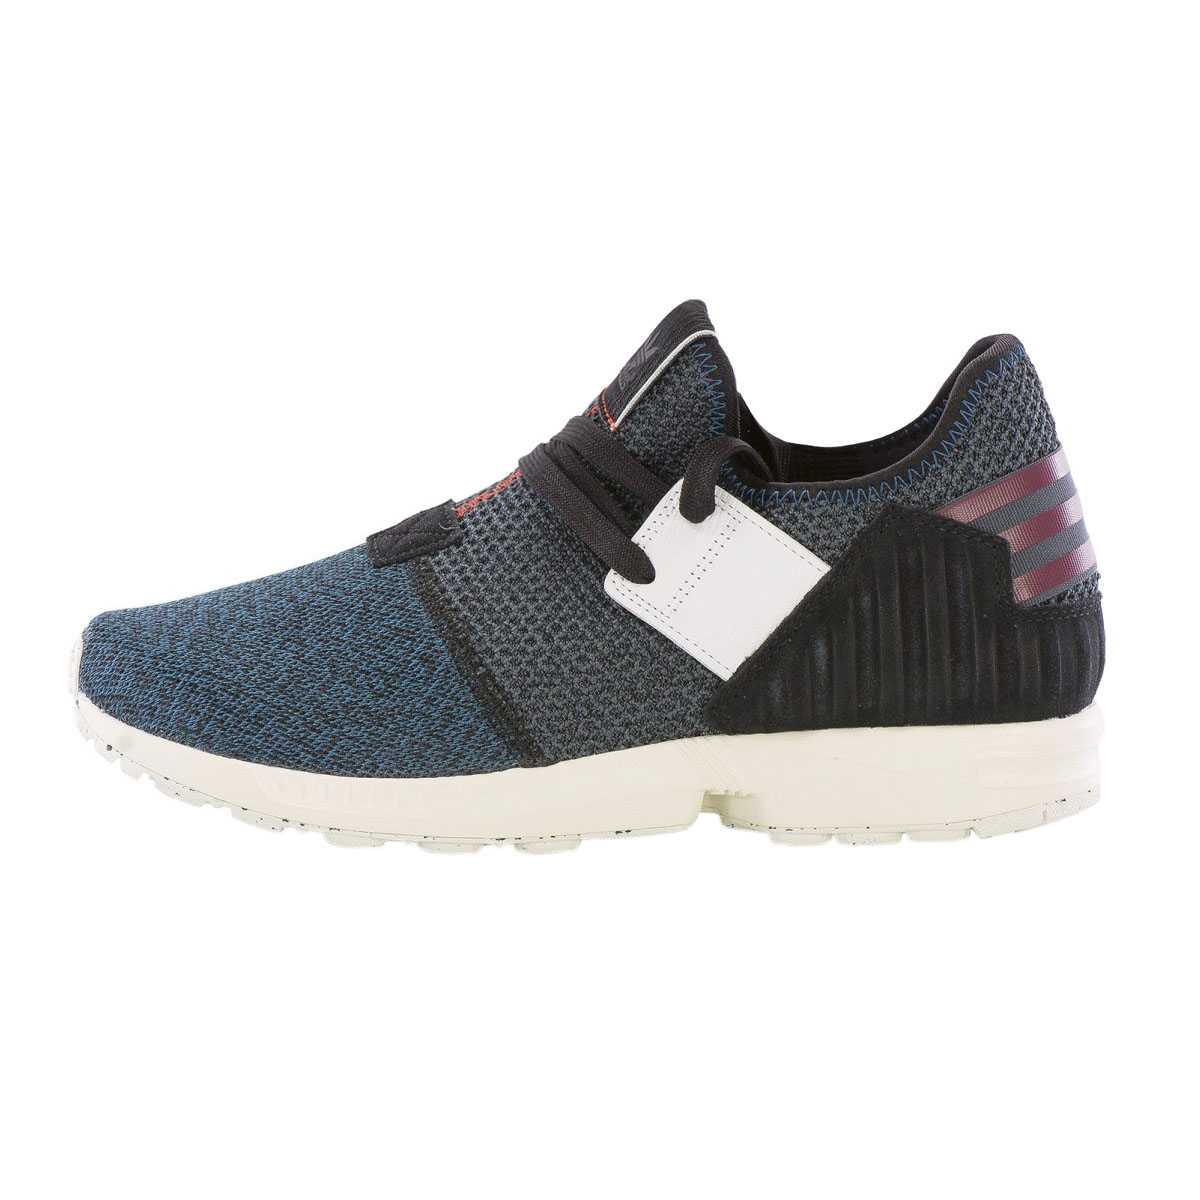 1aa2df9563f17 adidas Originals ZX Flux Plus Black Navy Zx8000 Mens Running Shoes AQ5398 9.  About this product. Picture 1 of 5  Picture 2 of 5 ...